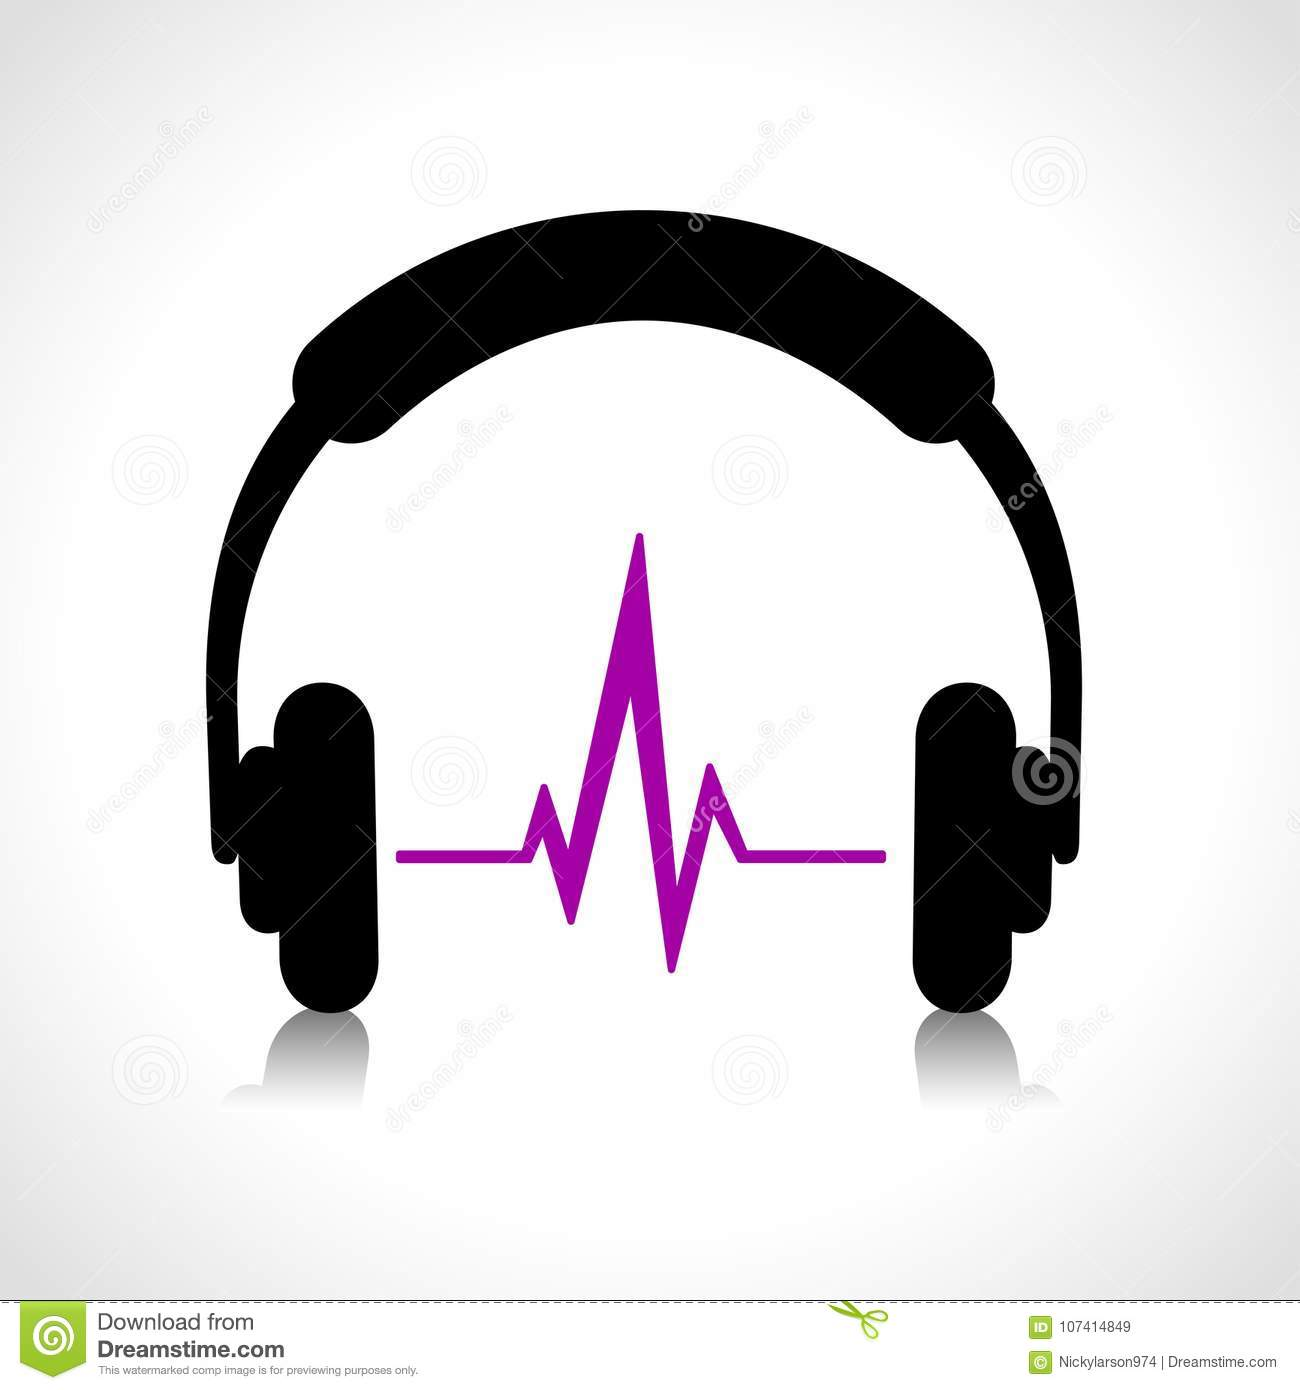 headphones abstract icon stock vector. illustration of design